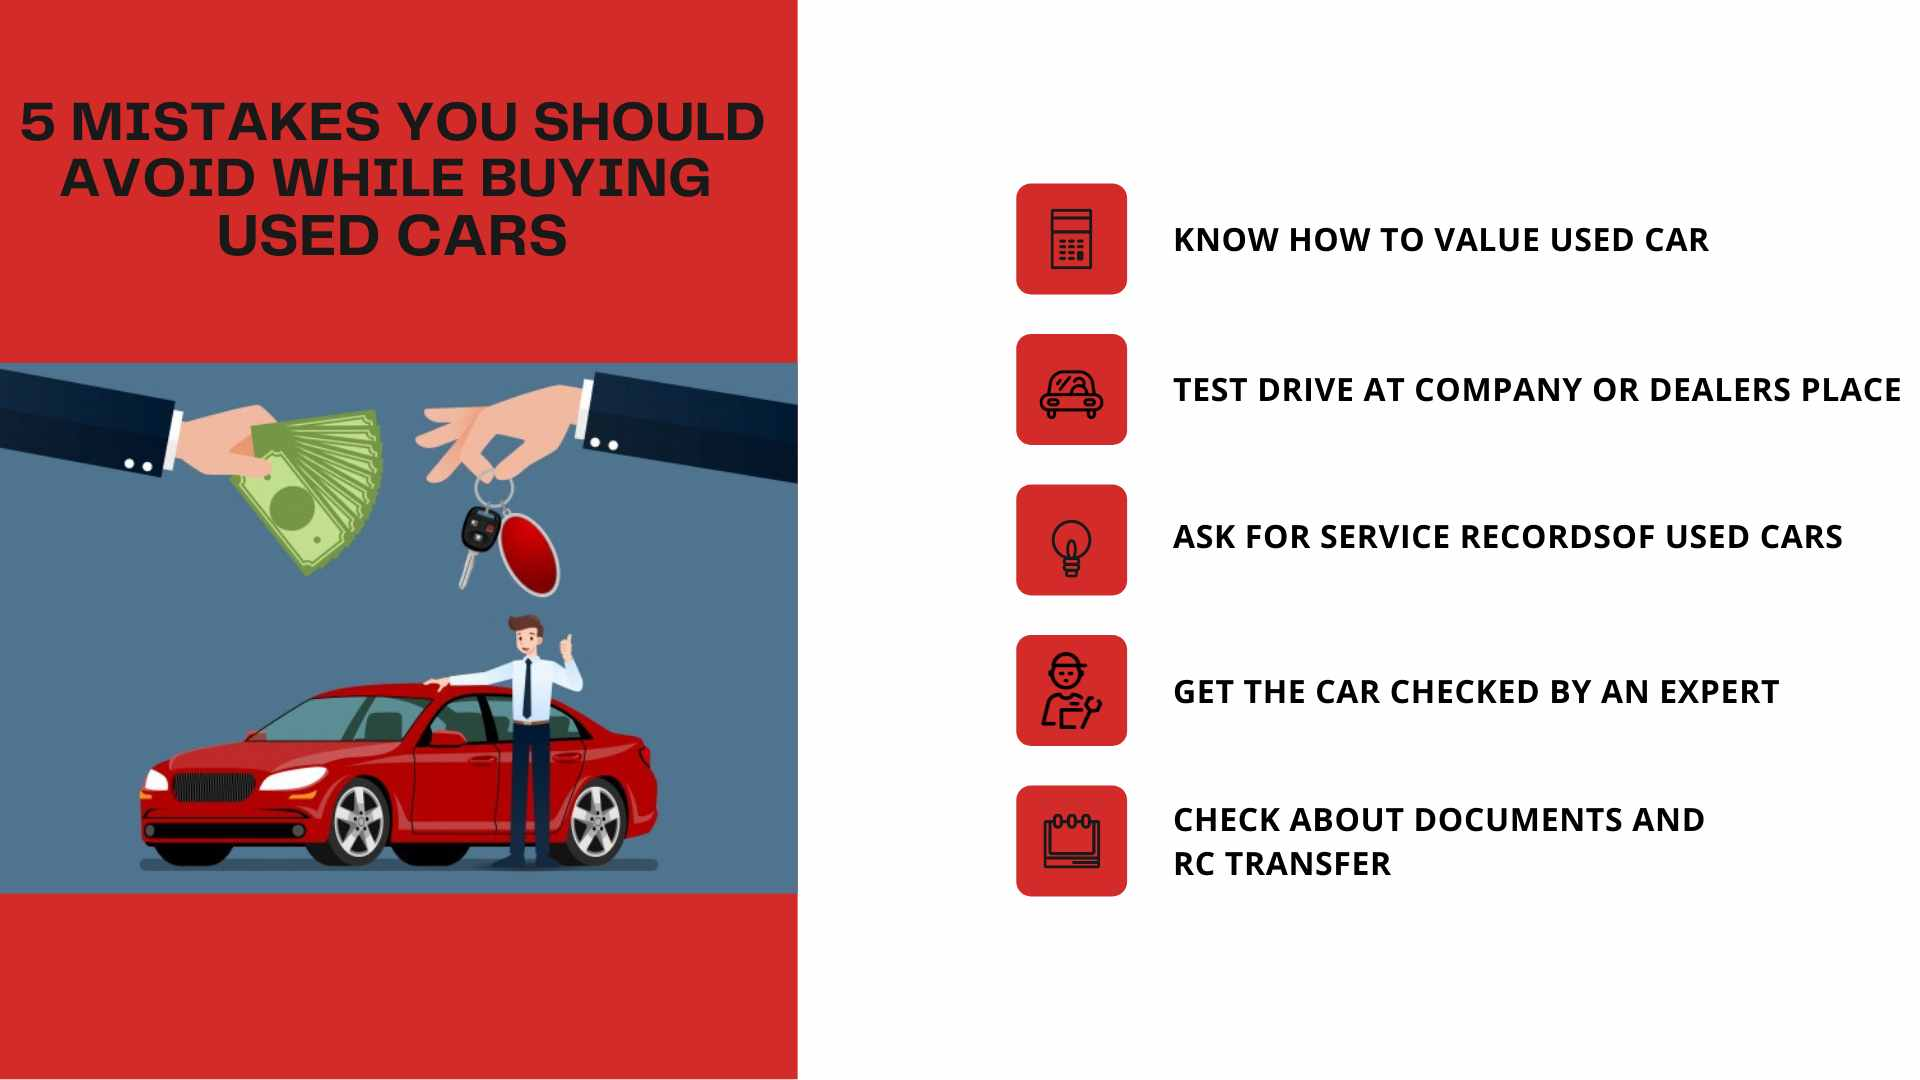 5 Mistakes You Should Avoid While Buying Used Cars